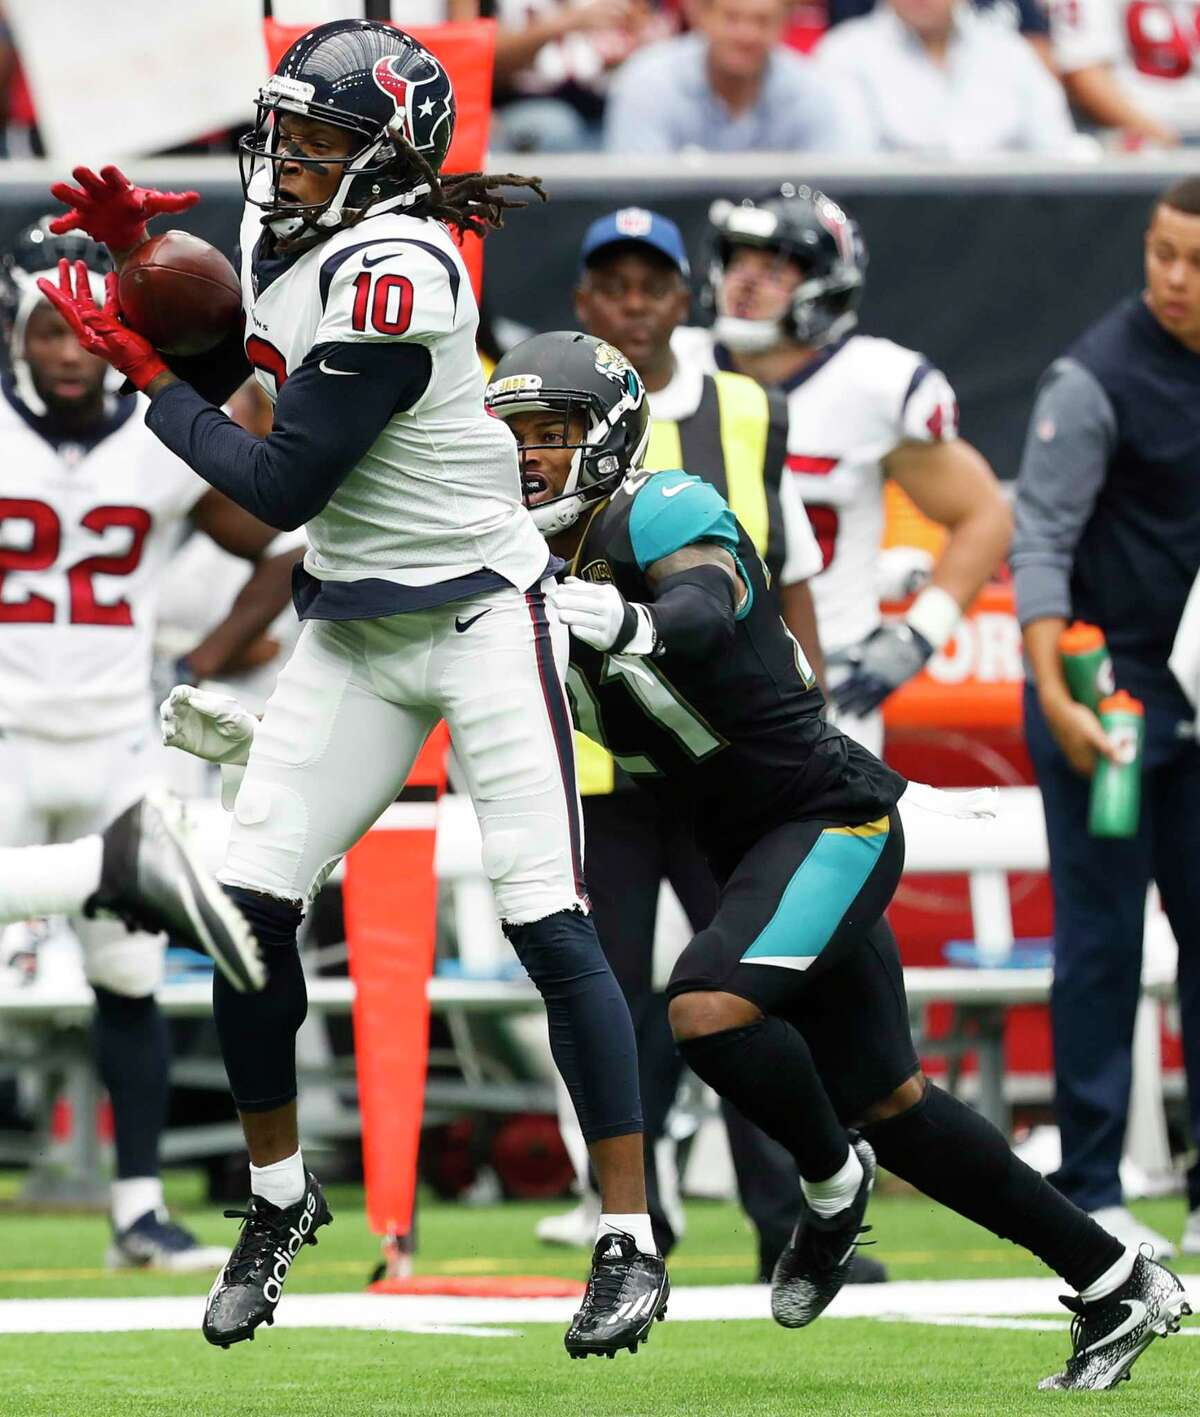 Texans receiver DeAndre Hopkins, left, makes a catch in front of Jaguars cornerback A.J. Bouye during Jacksonville's win in the season opener.